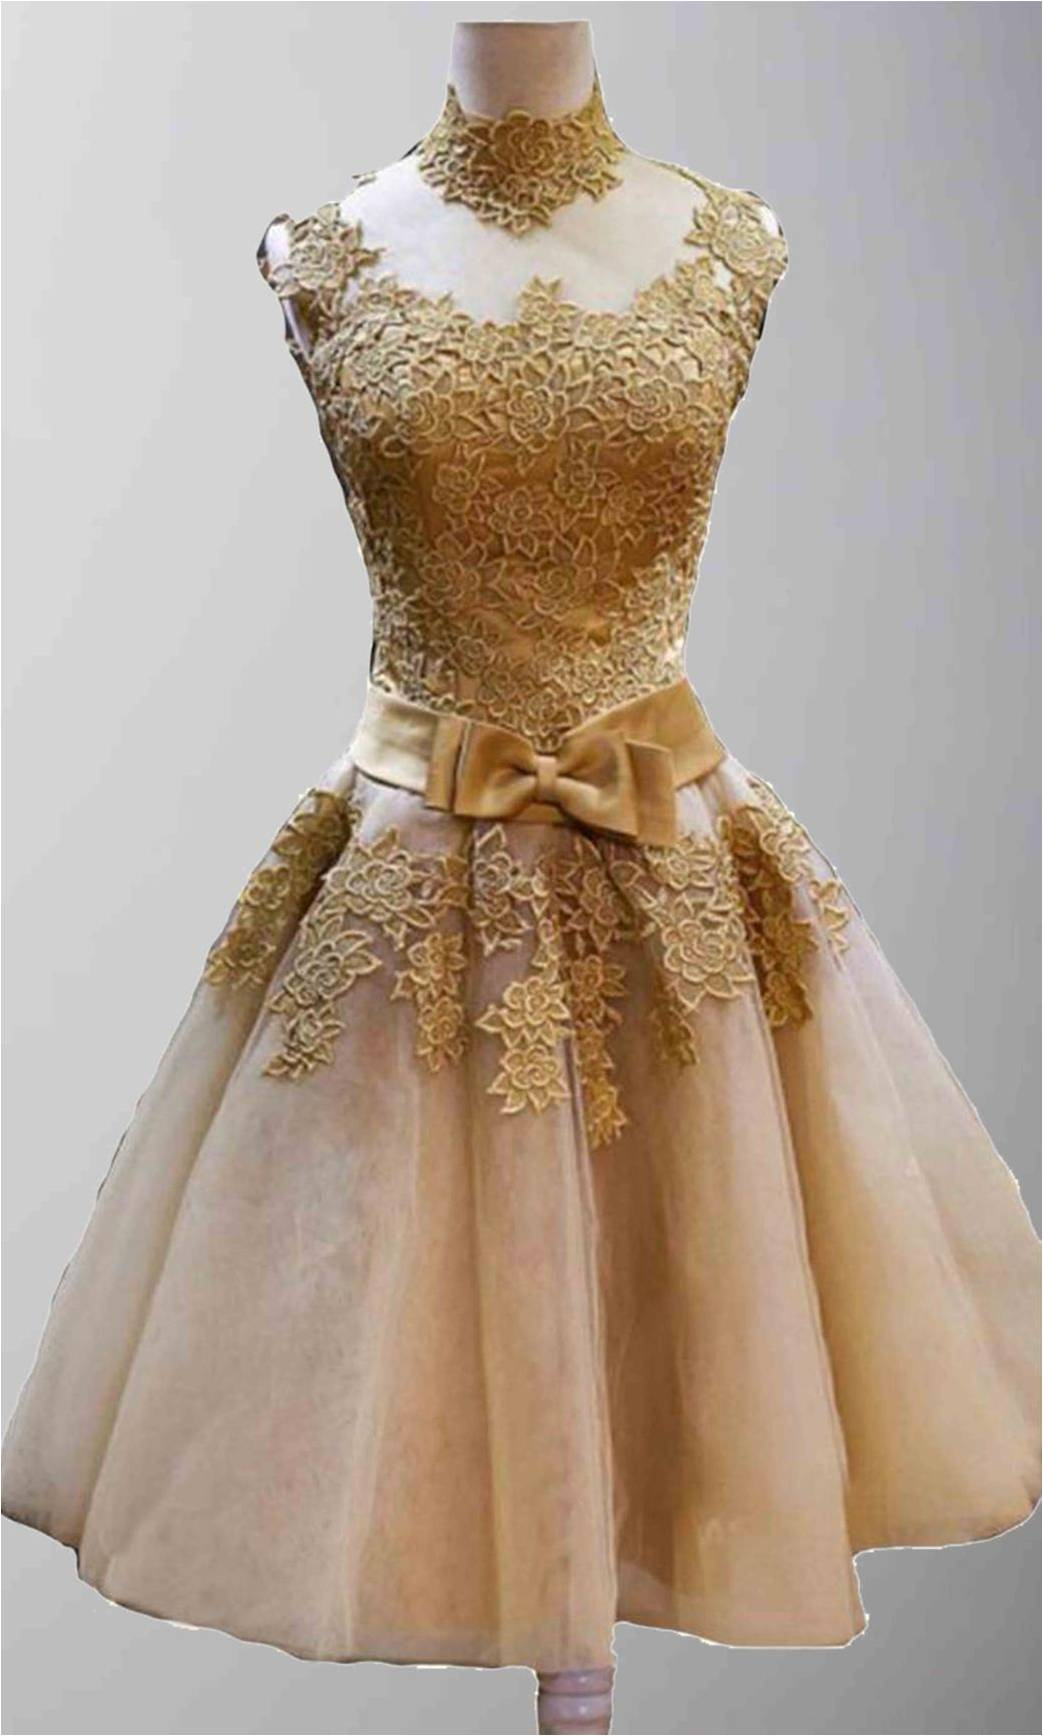 Golden Vintage Princess High Neck Short Prom Dresses KSP320 [KSP320] - £117.00 : Cheap Prom Dresses Uk, Bridesmaid Dresses, 2014 Prom & Evening Dresses, Look for cheap elegant prom dresses 2014, cocktail gowns, or dresses for special occasions? kissprom.co.uk offers various bridesmaid dresses, evening dress, free shipping to UK etc.